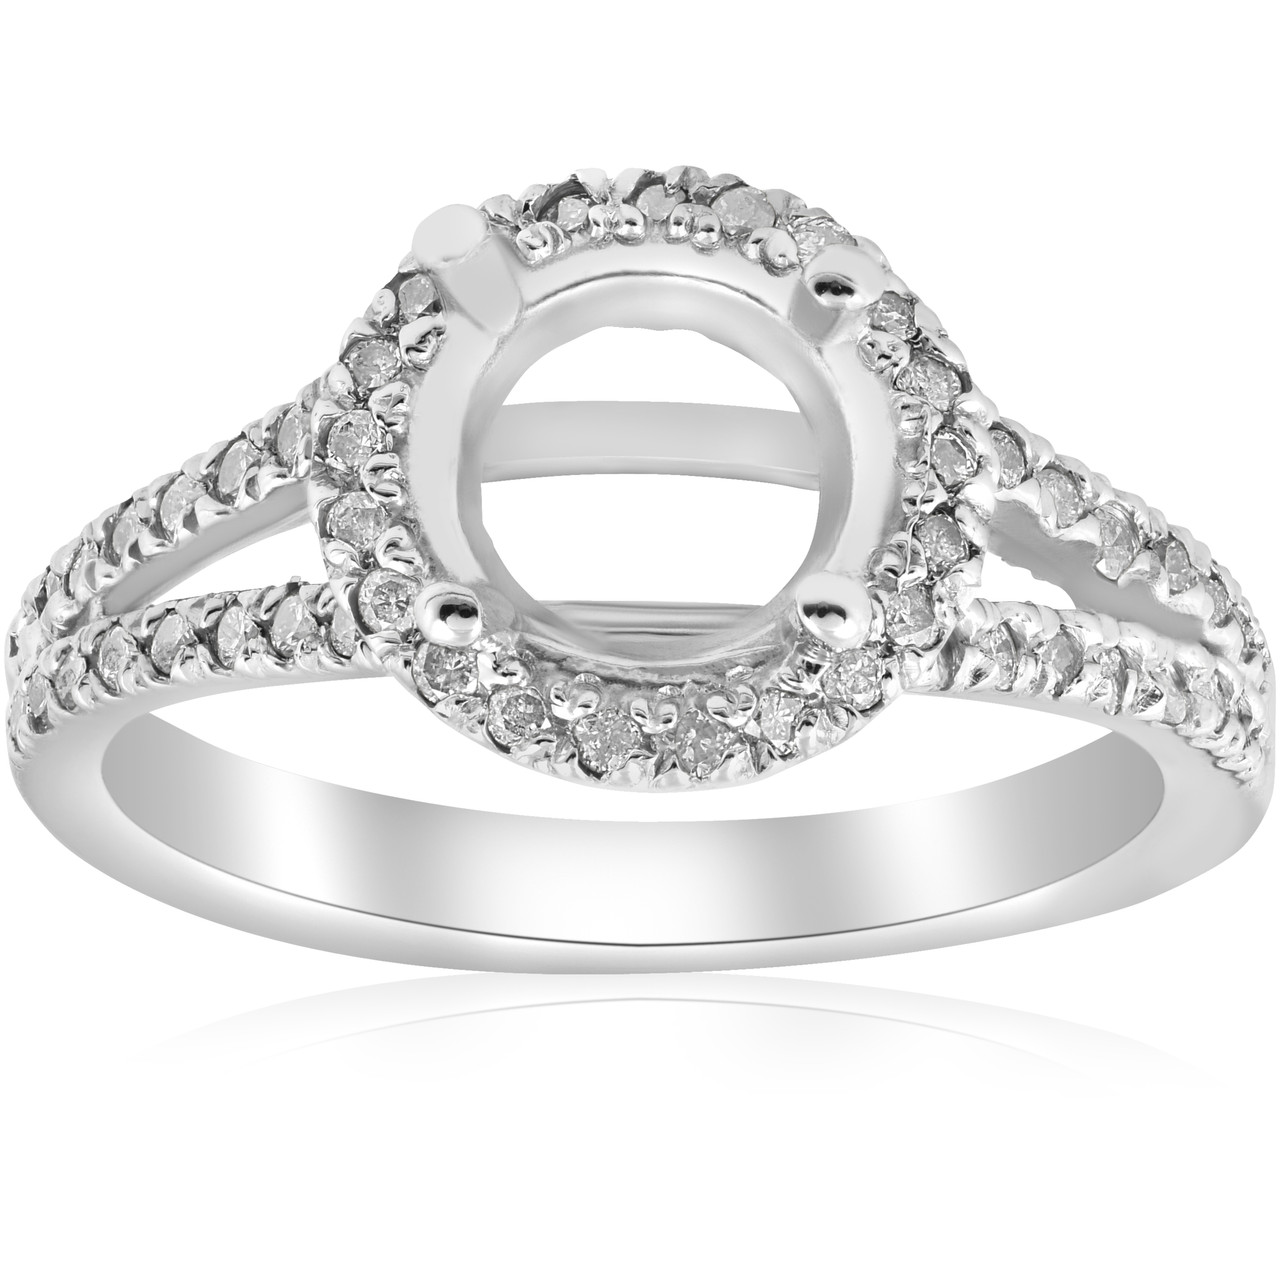 split wedding ring shank rings halo best diamond engagement in white gold mounting odlldhb mount promise